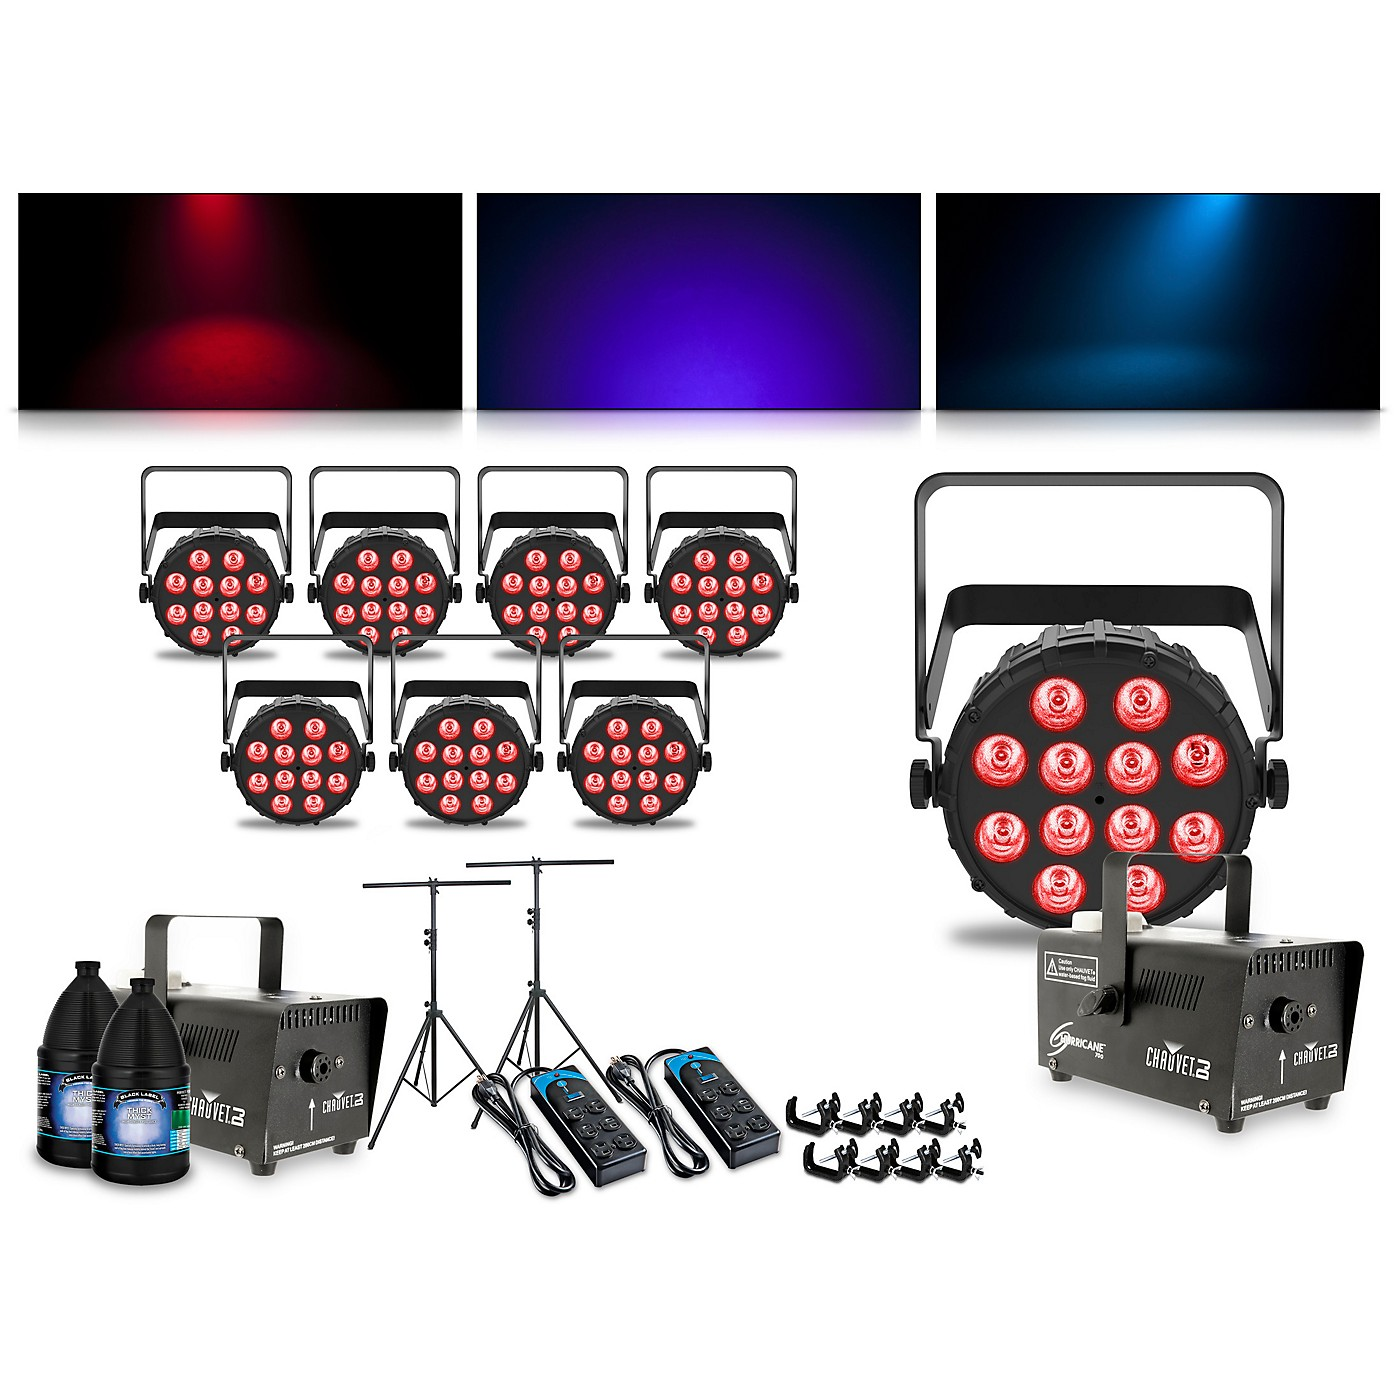 CHAUVET DJ Complete Lighting Package with Eight SlimPAR Q12 BT and Two Hurricane 700 Fog Machines thumbnail